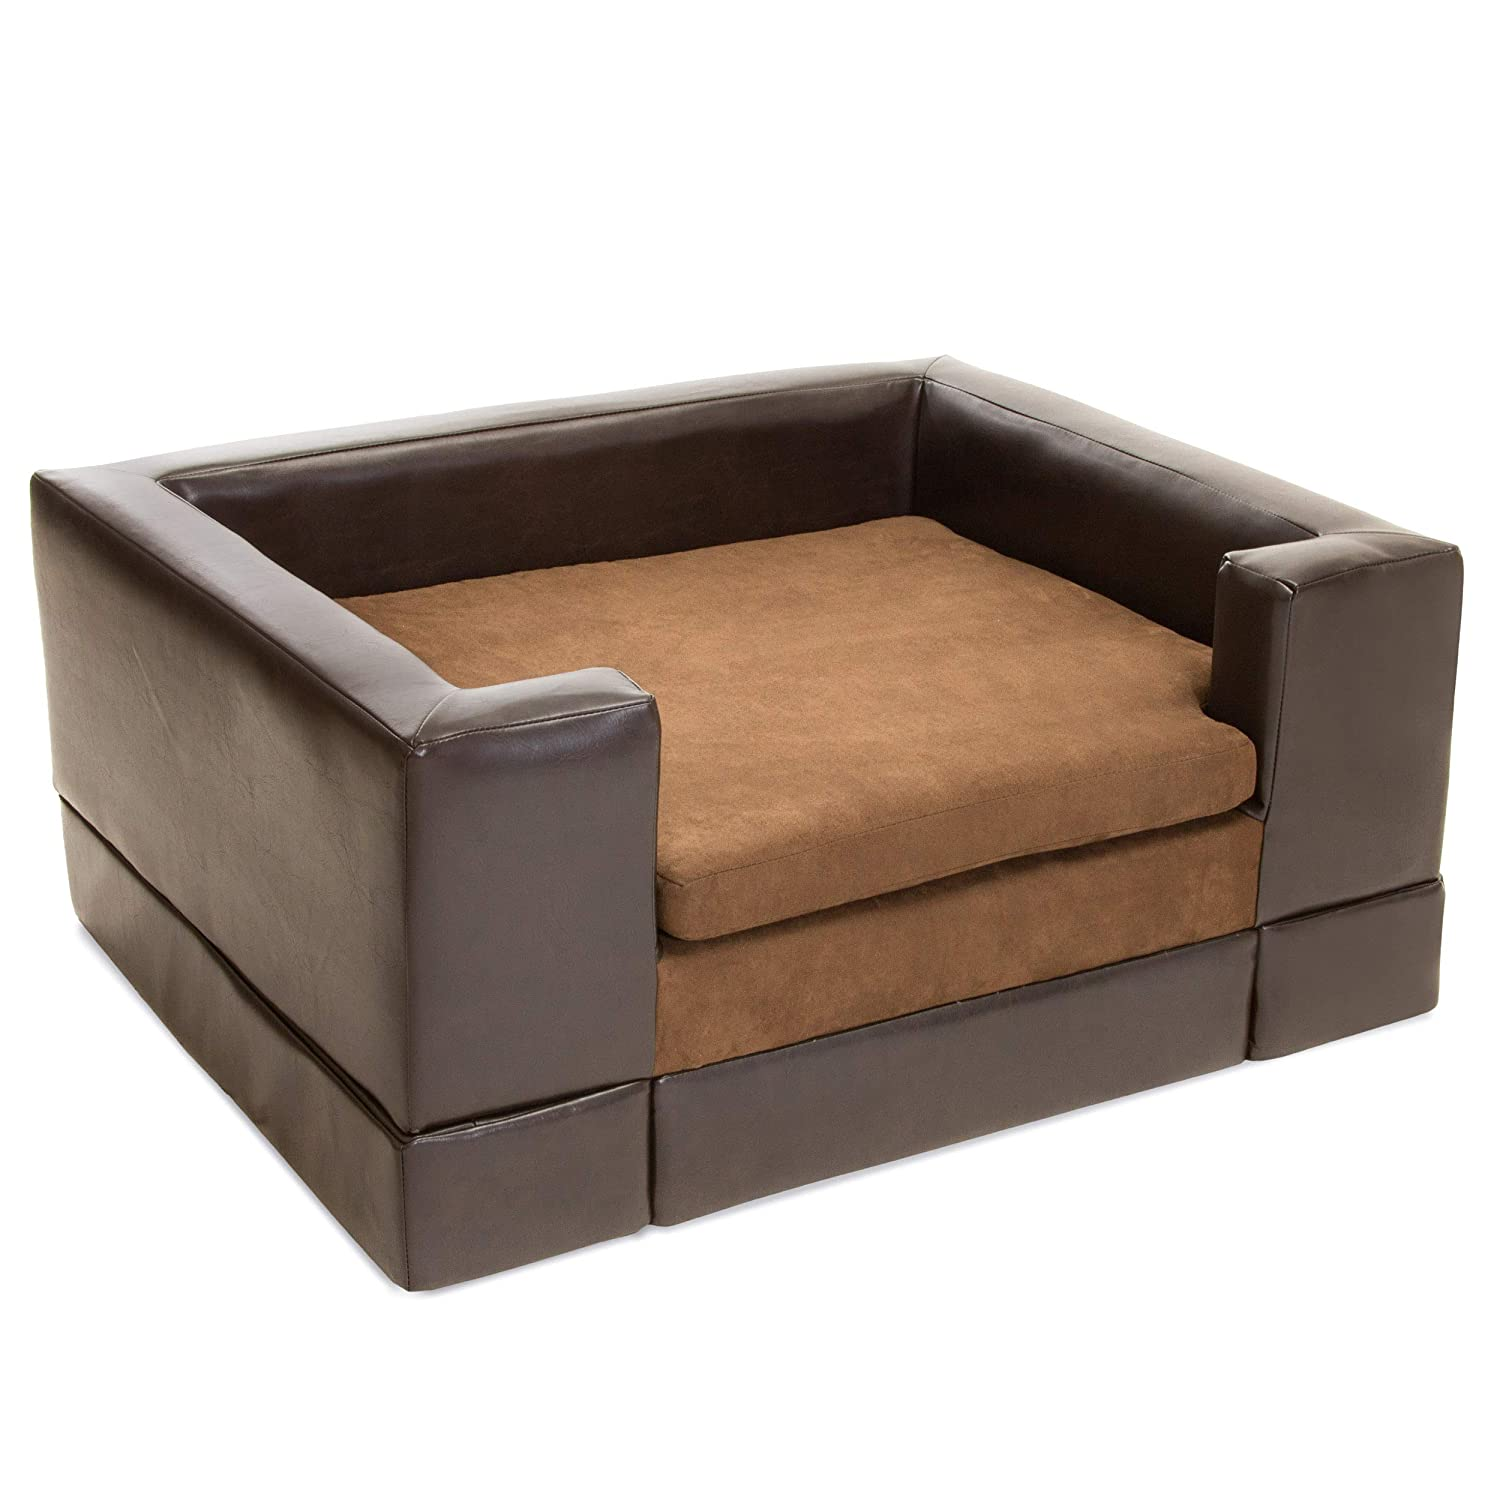 Christopher Knight Home 295168 Rover Large Chocolate Brown Leather Pet Sofa  Bed, 37.75 x 30.70